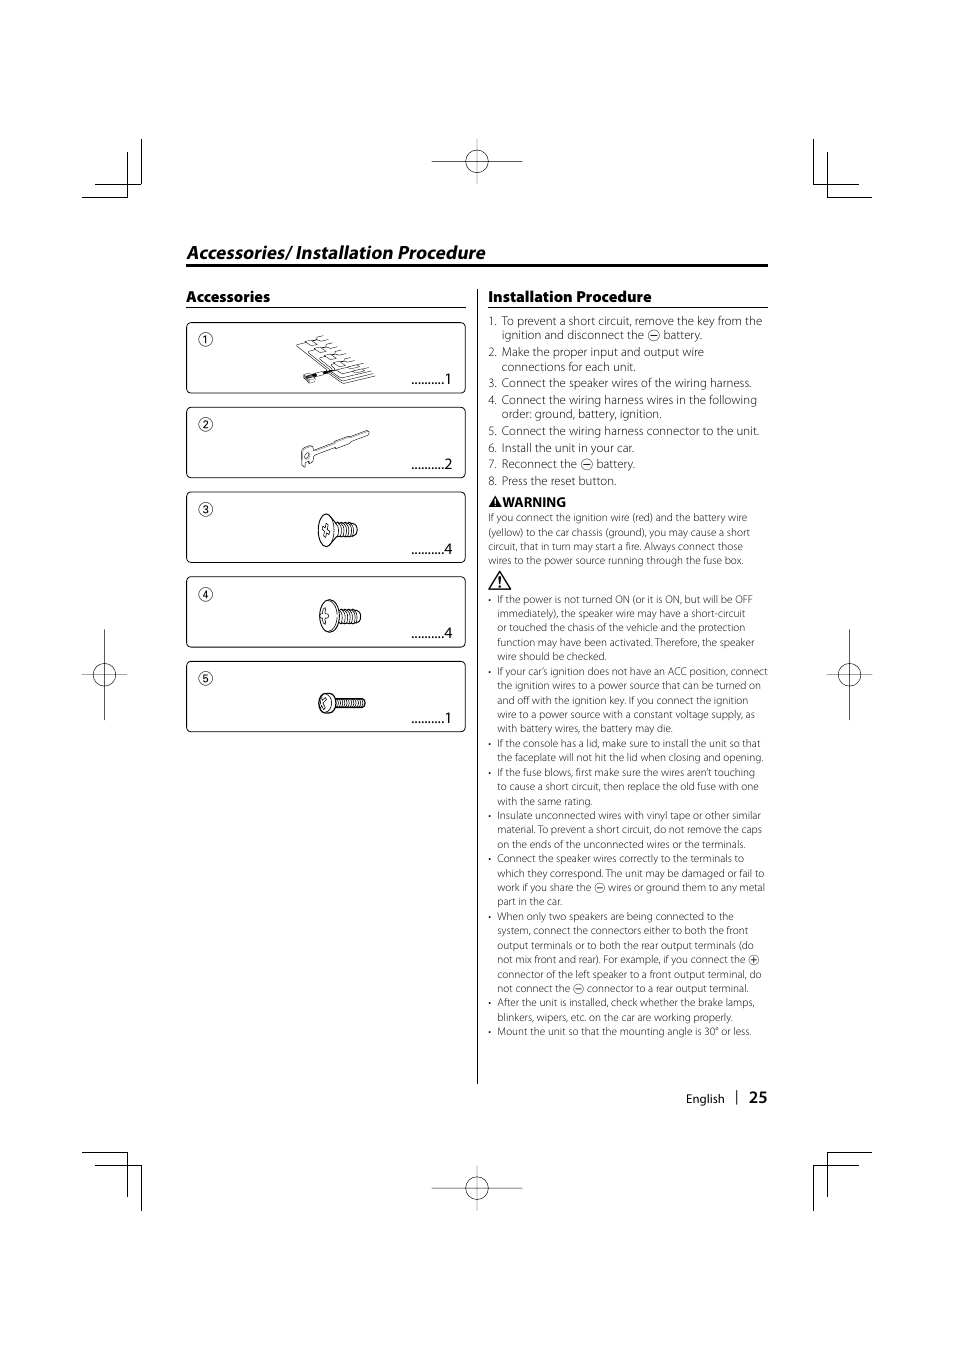 medium resolution of accessories installation procedure kenwood kdc mp205 user manual kenwood model kdc 2025 wiring diagram